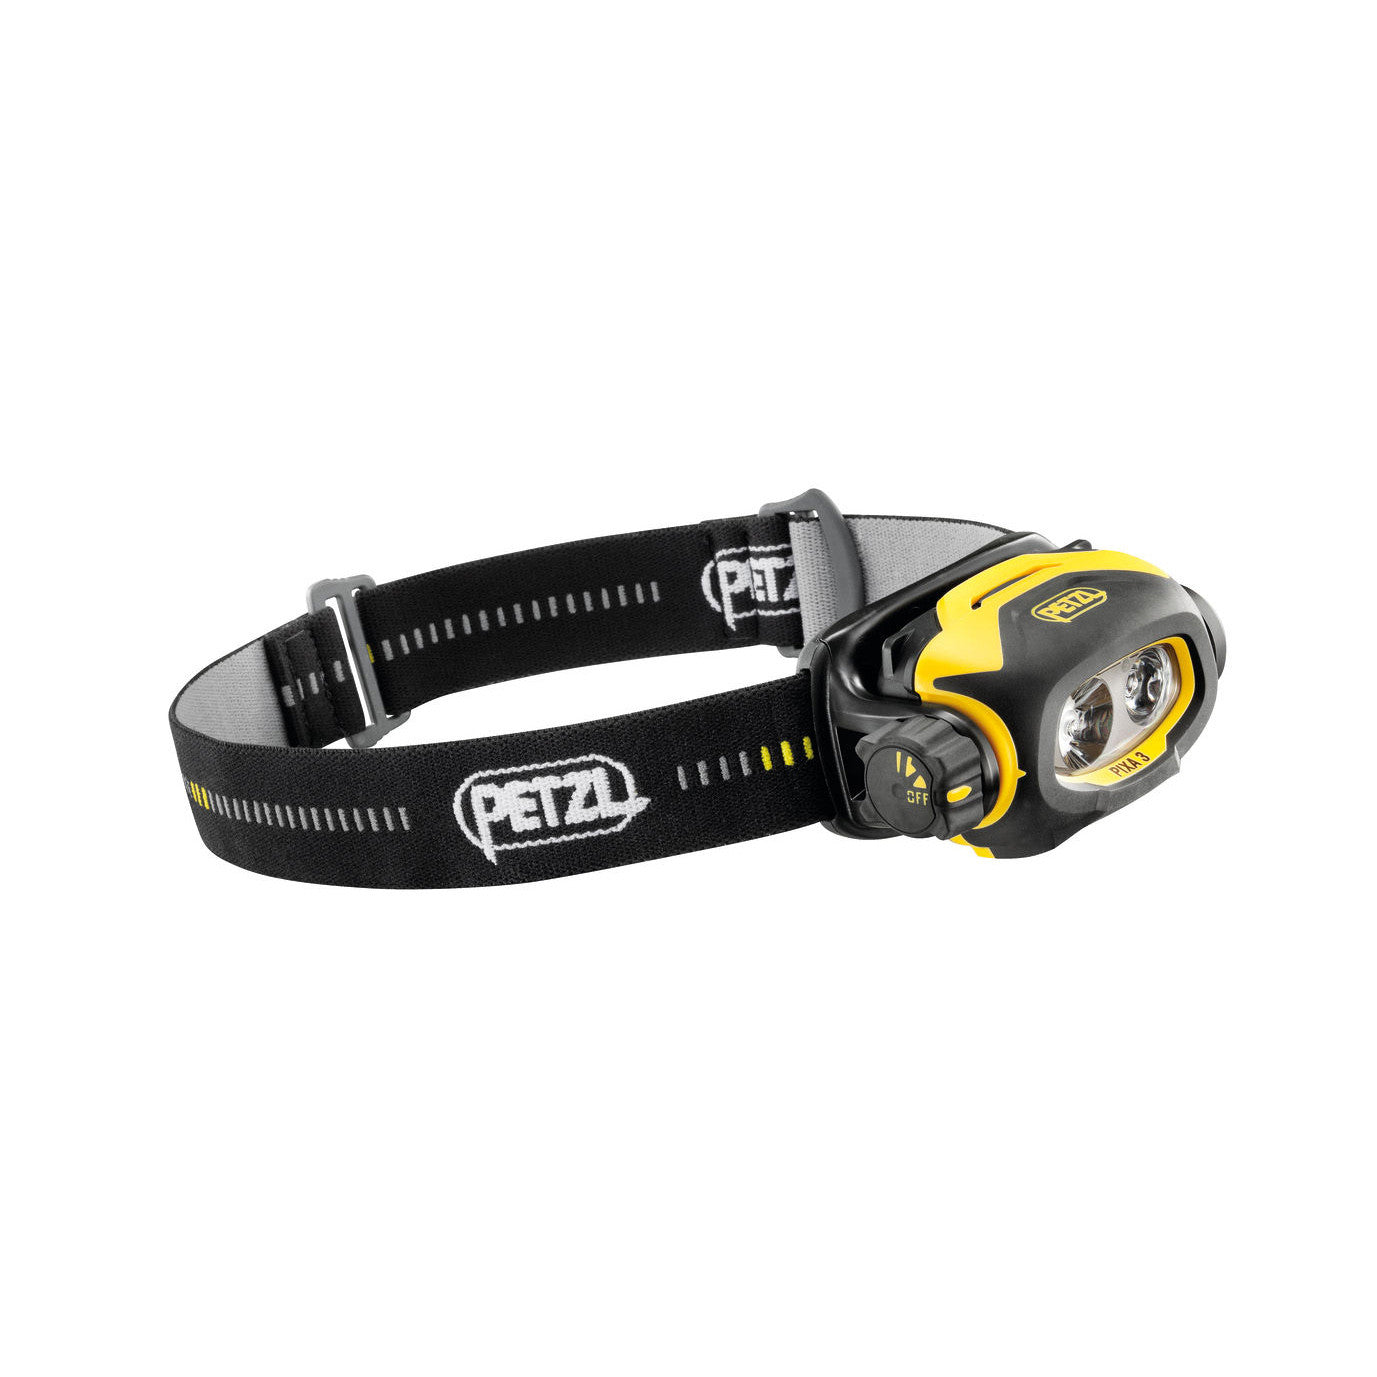 Batteries, Flashlights, and Headlamps